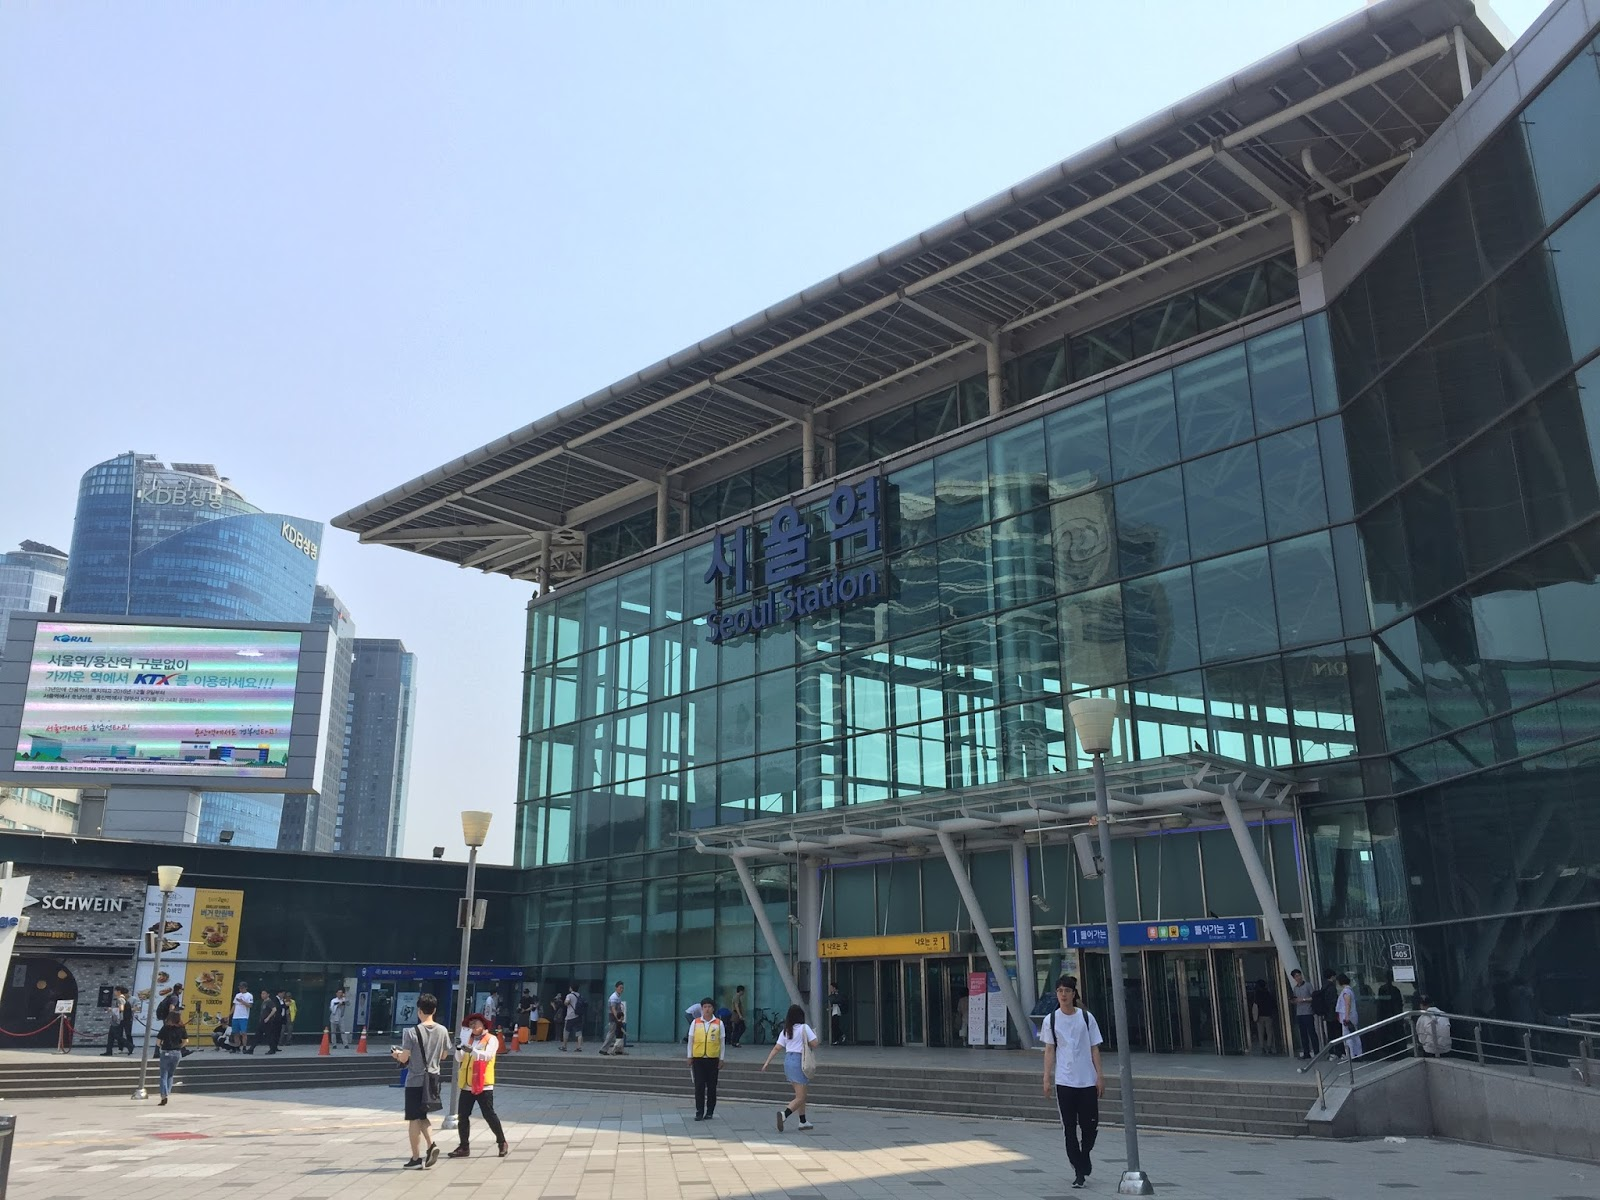 First Of All Visit The Airport Railroad Arex Travel Center Located At B2 Floor Seoul Station To Your Heavy Luggages In